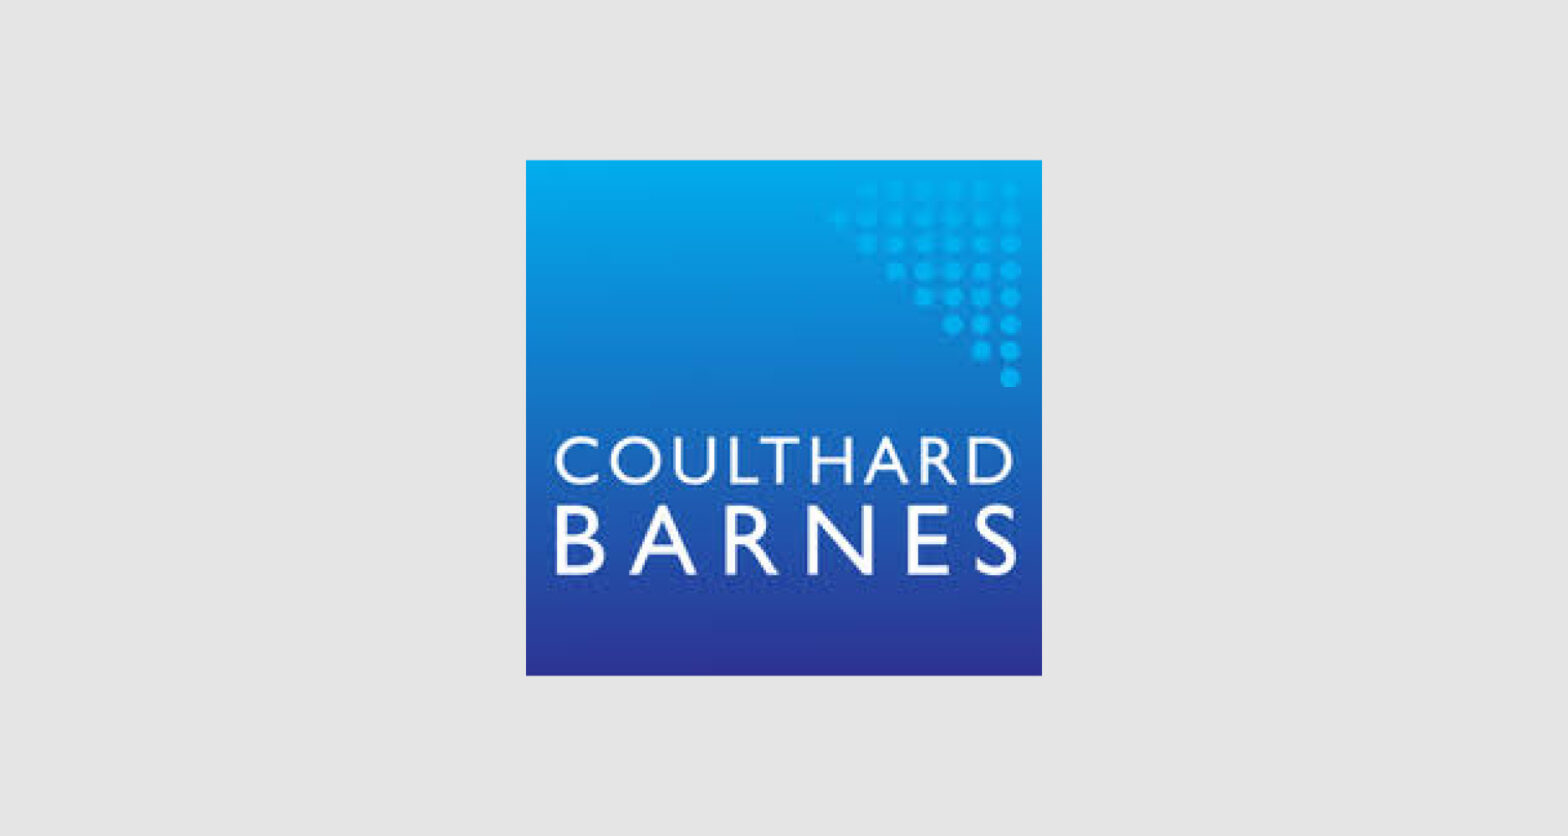 CWEIC Welcomes Coulthard Barnes as a Strategic Partner